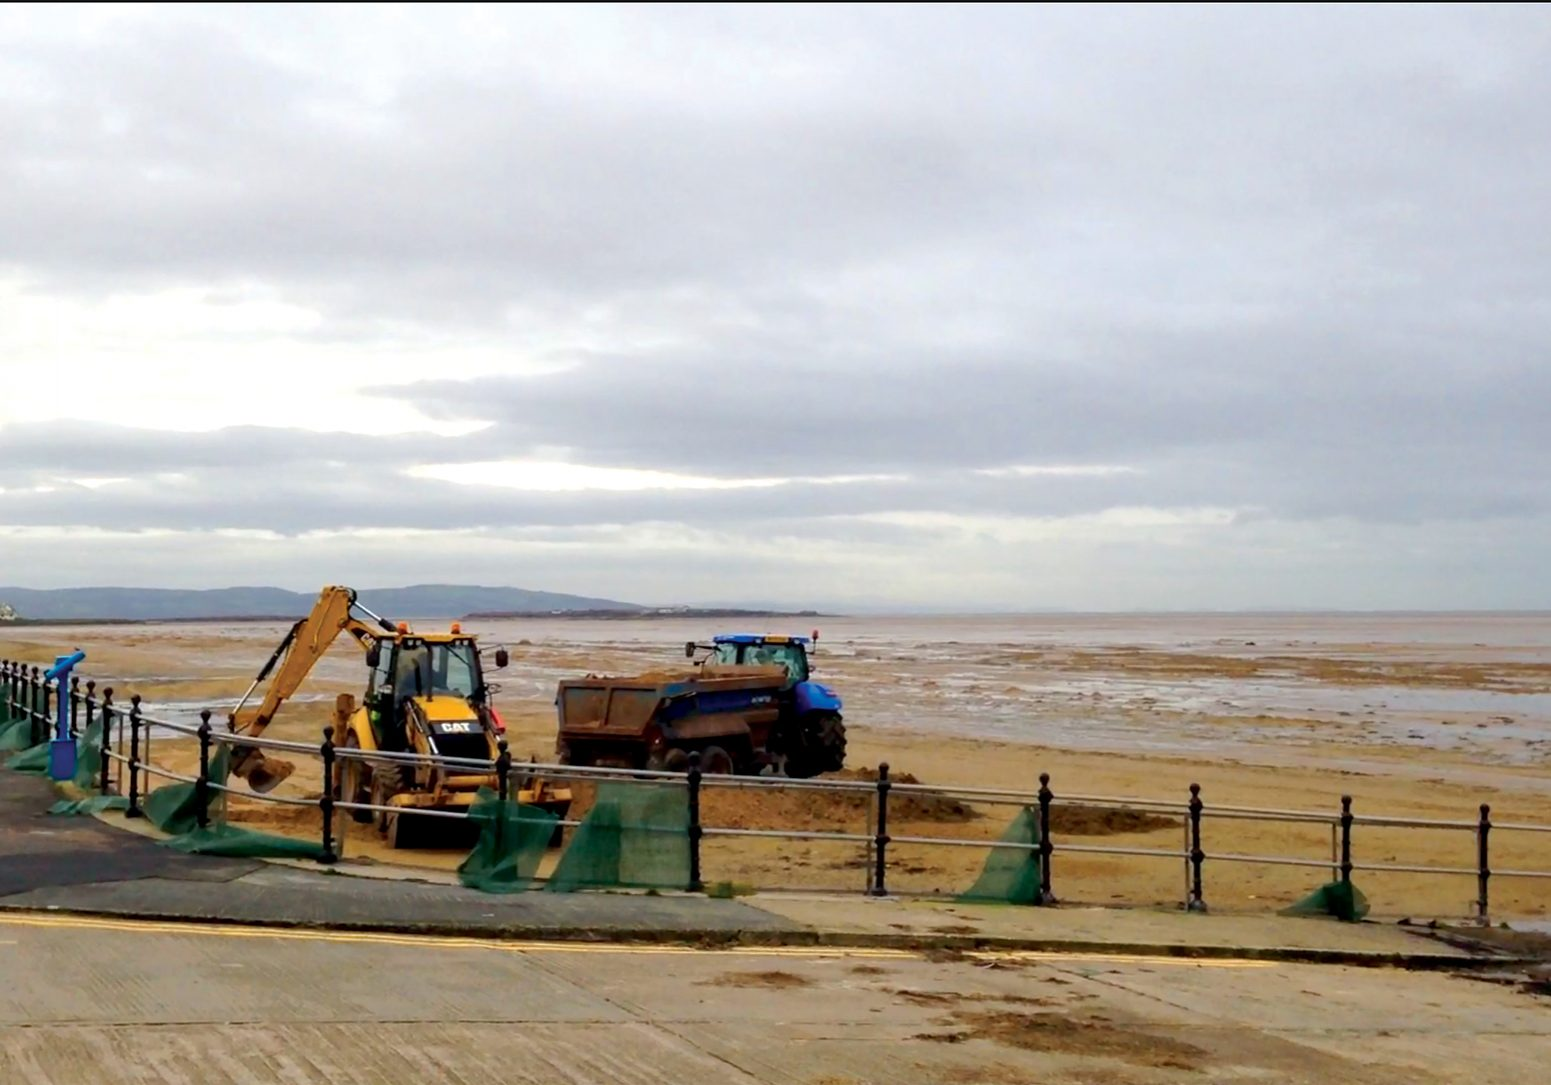 December 2014. Mechanical lowering of sand levels at the promenade wall. Ongoing sand accretion threatens to block surface water drainage. © HVL